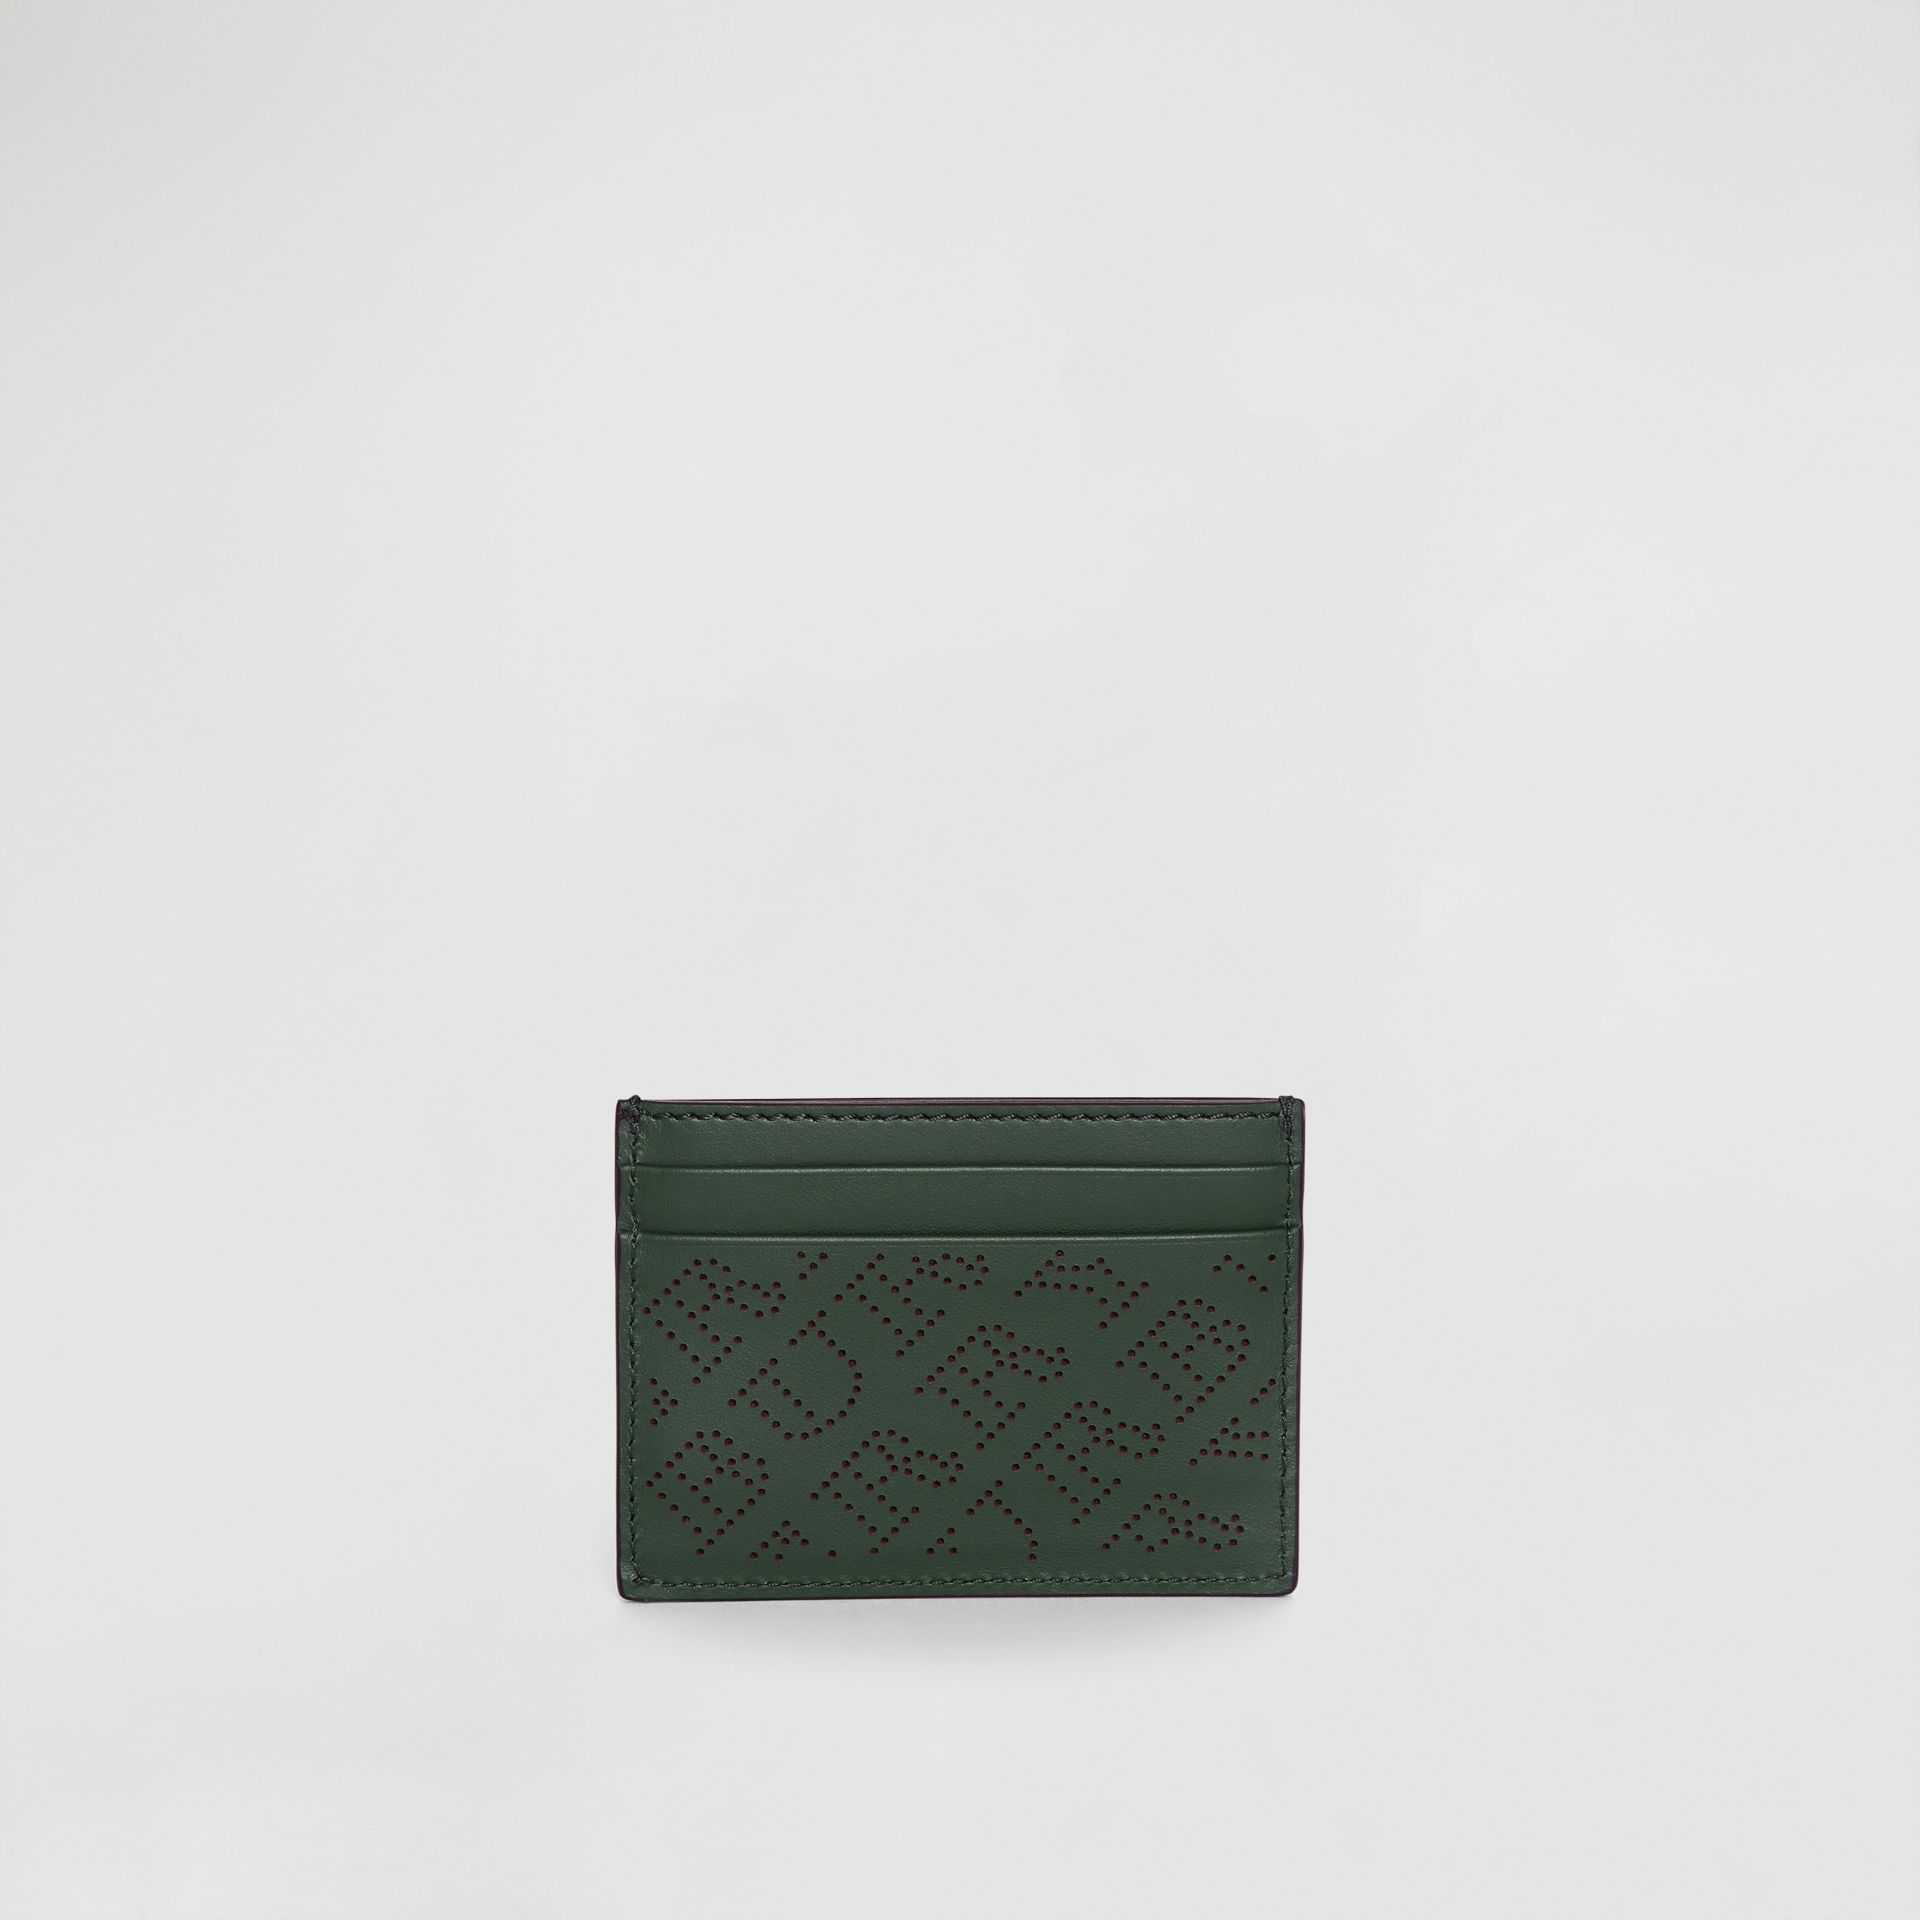 Perforated Logo Leather Card Case in Vintage Green - Women | Burberry Australia - gallery image 5